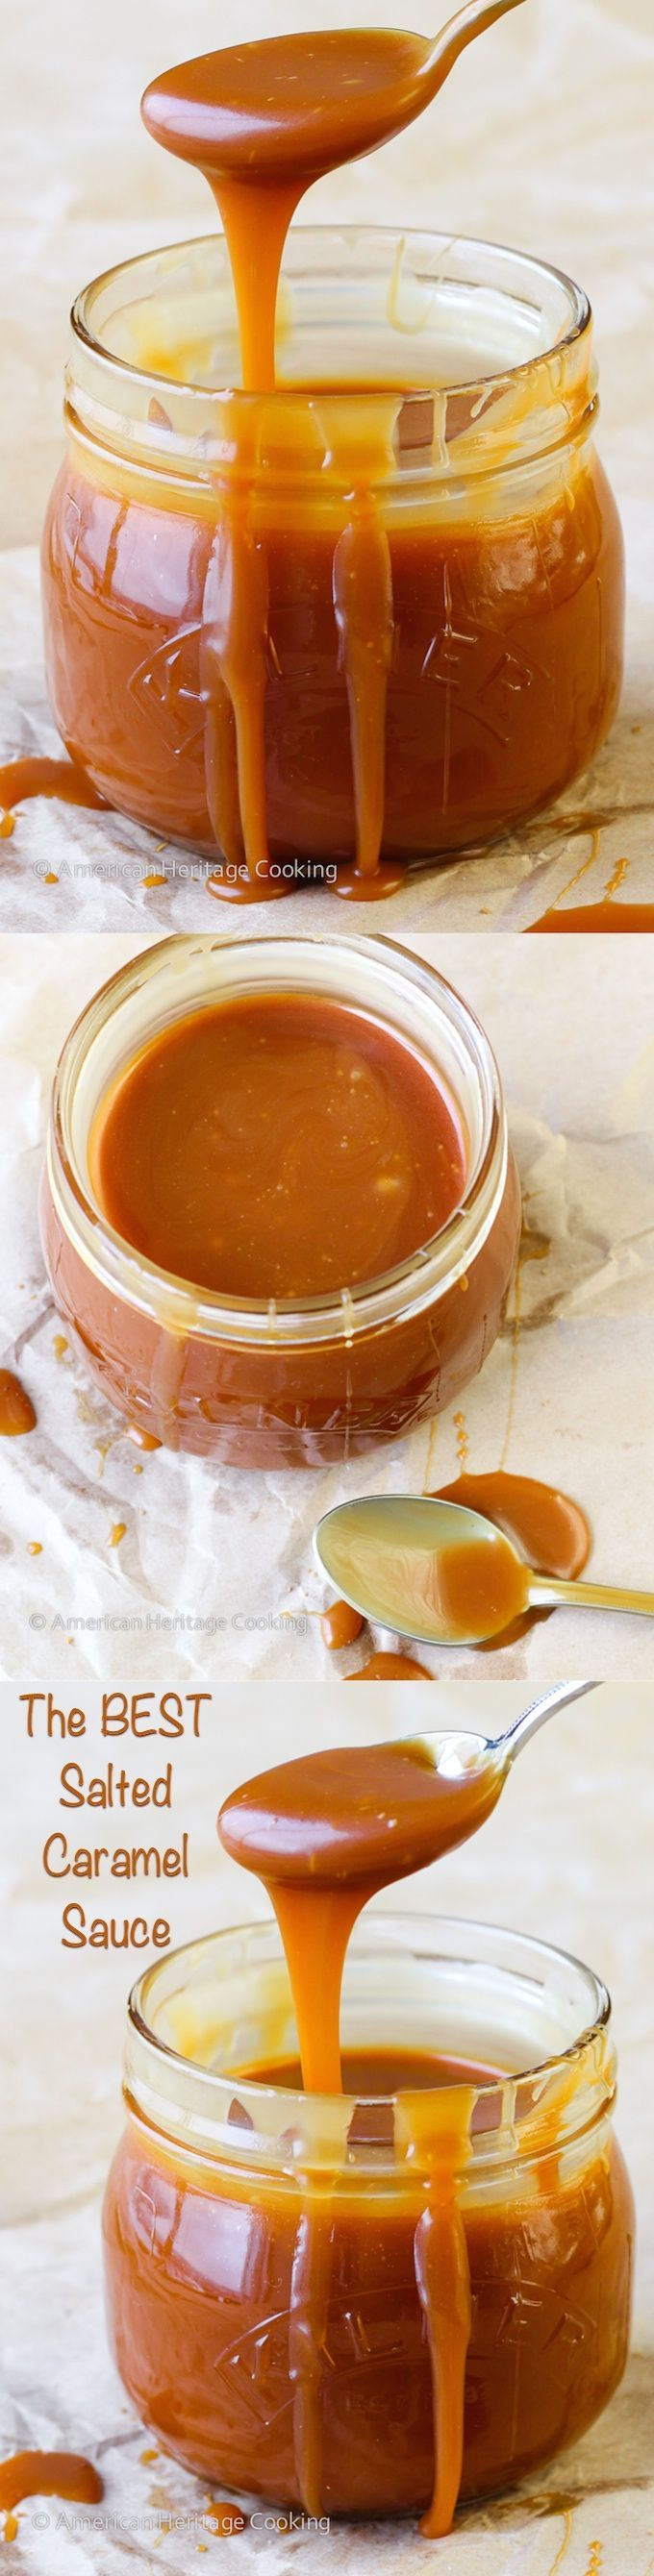 The BEST Salted Caramel Sauce | Plus 5 tips to help make deslicious caramel every time! - American Heritage Cooking